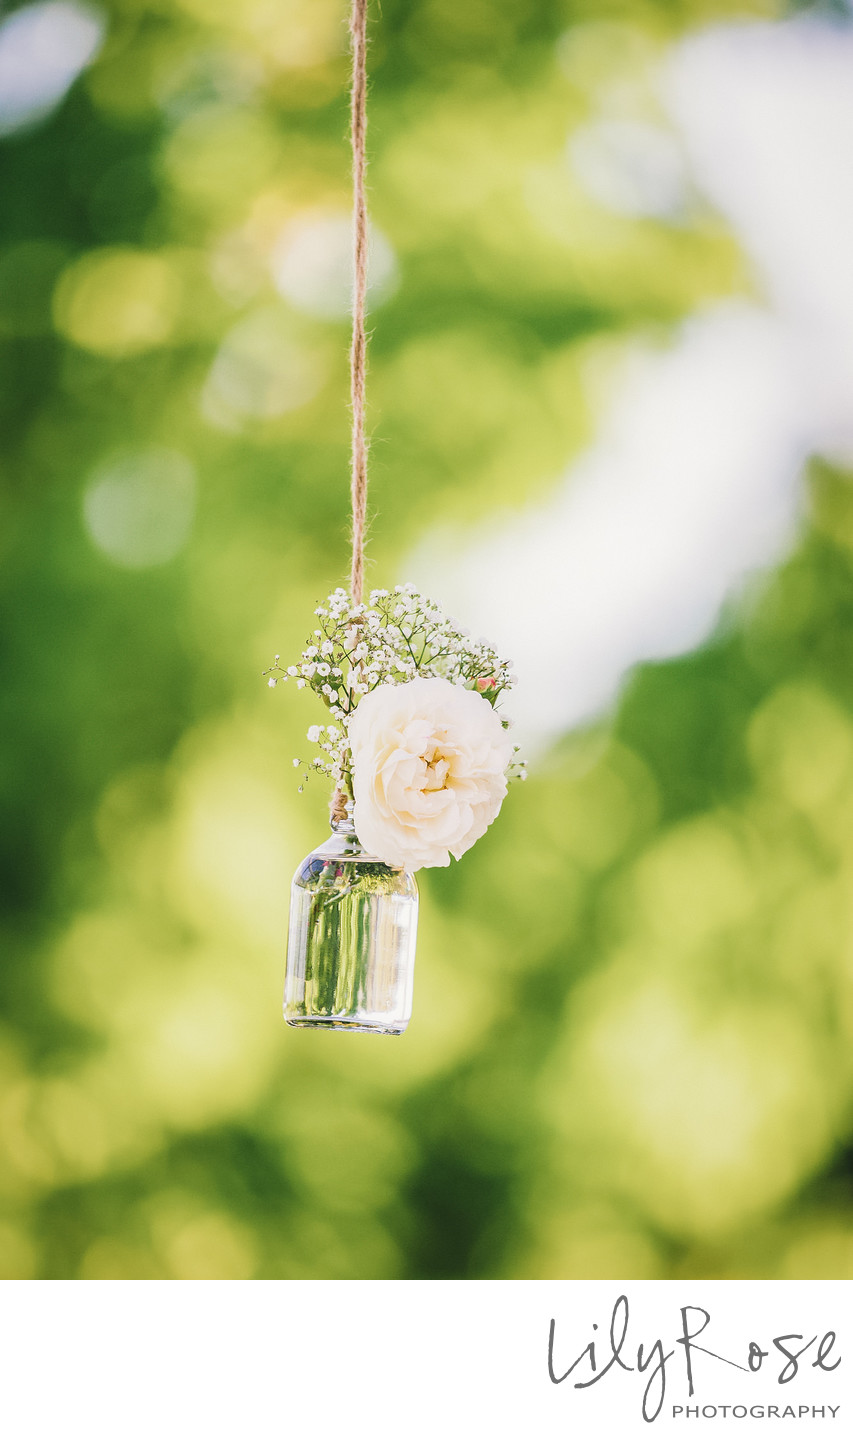 Wedding Decor Details Wedding Photography